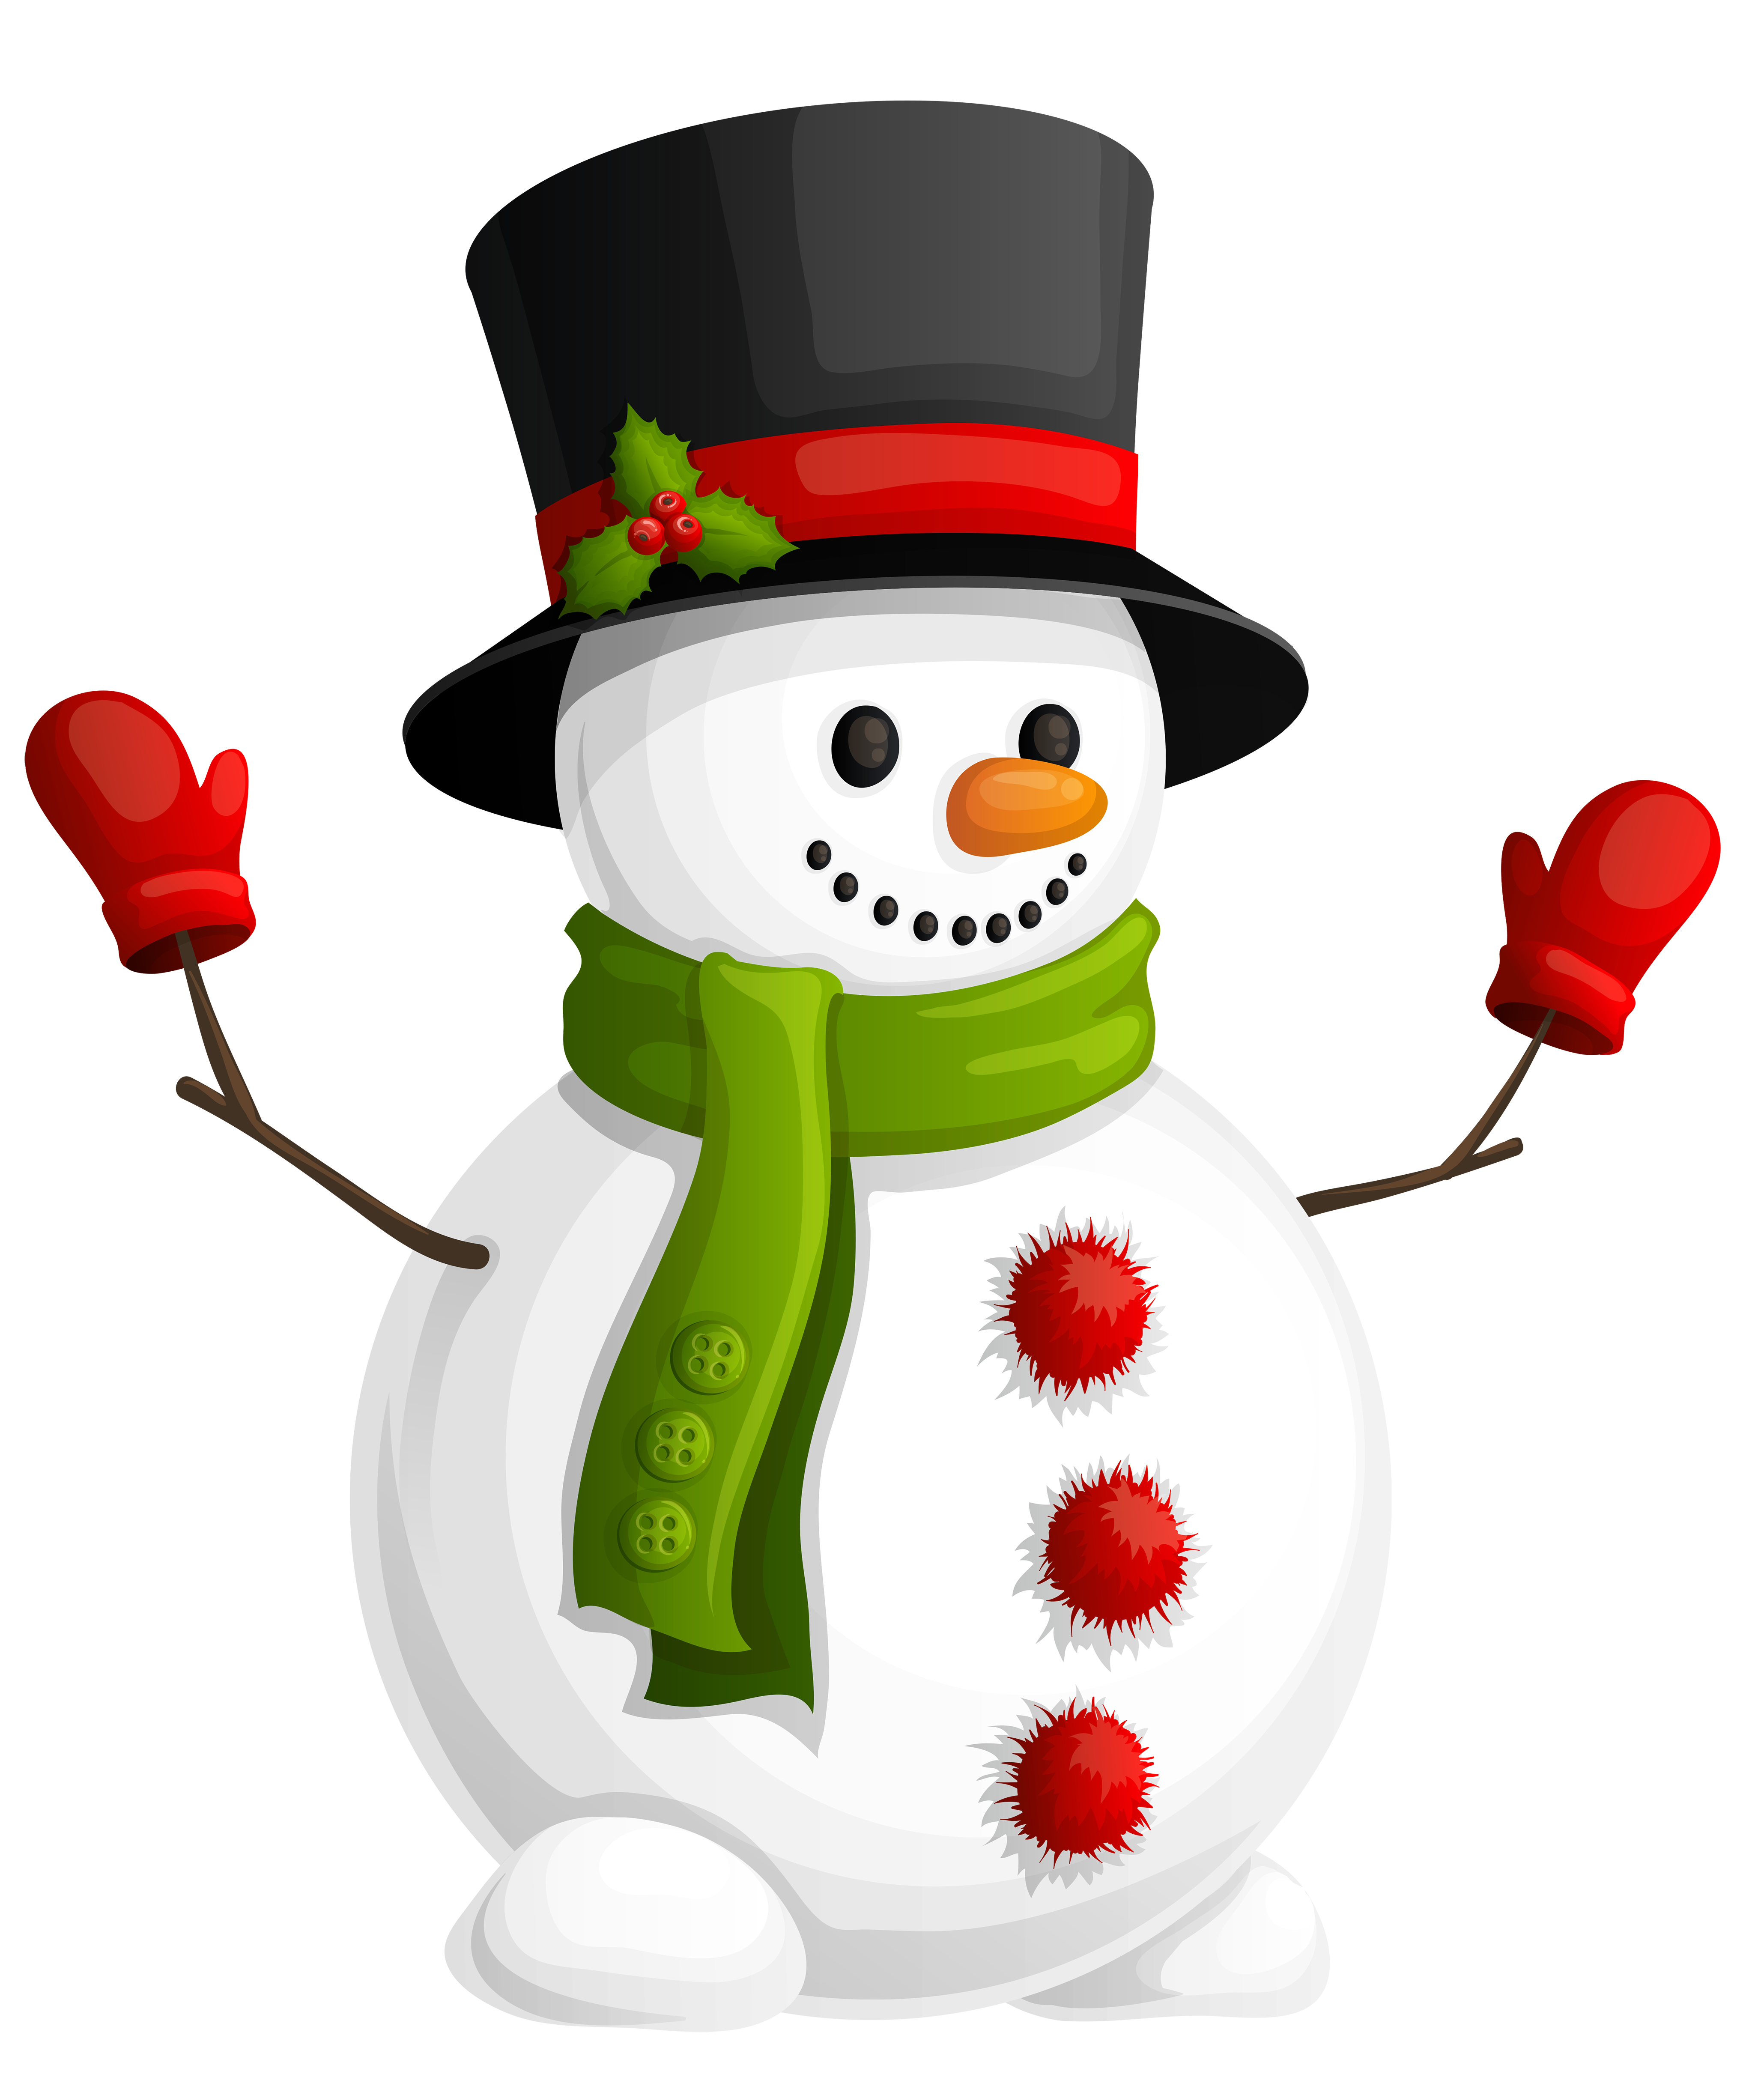 1950 s snowman clipart no background clip royalty free download Snowman,Cartoon,Illustration,Plant,Clip art,Fictional character ... clip royalty free download